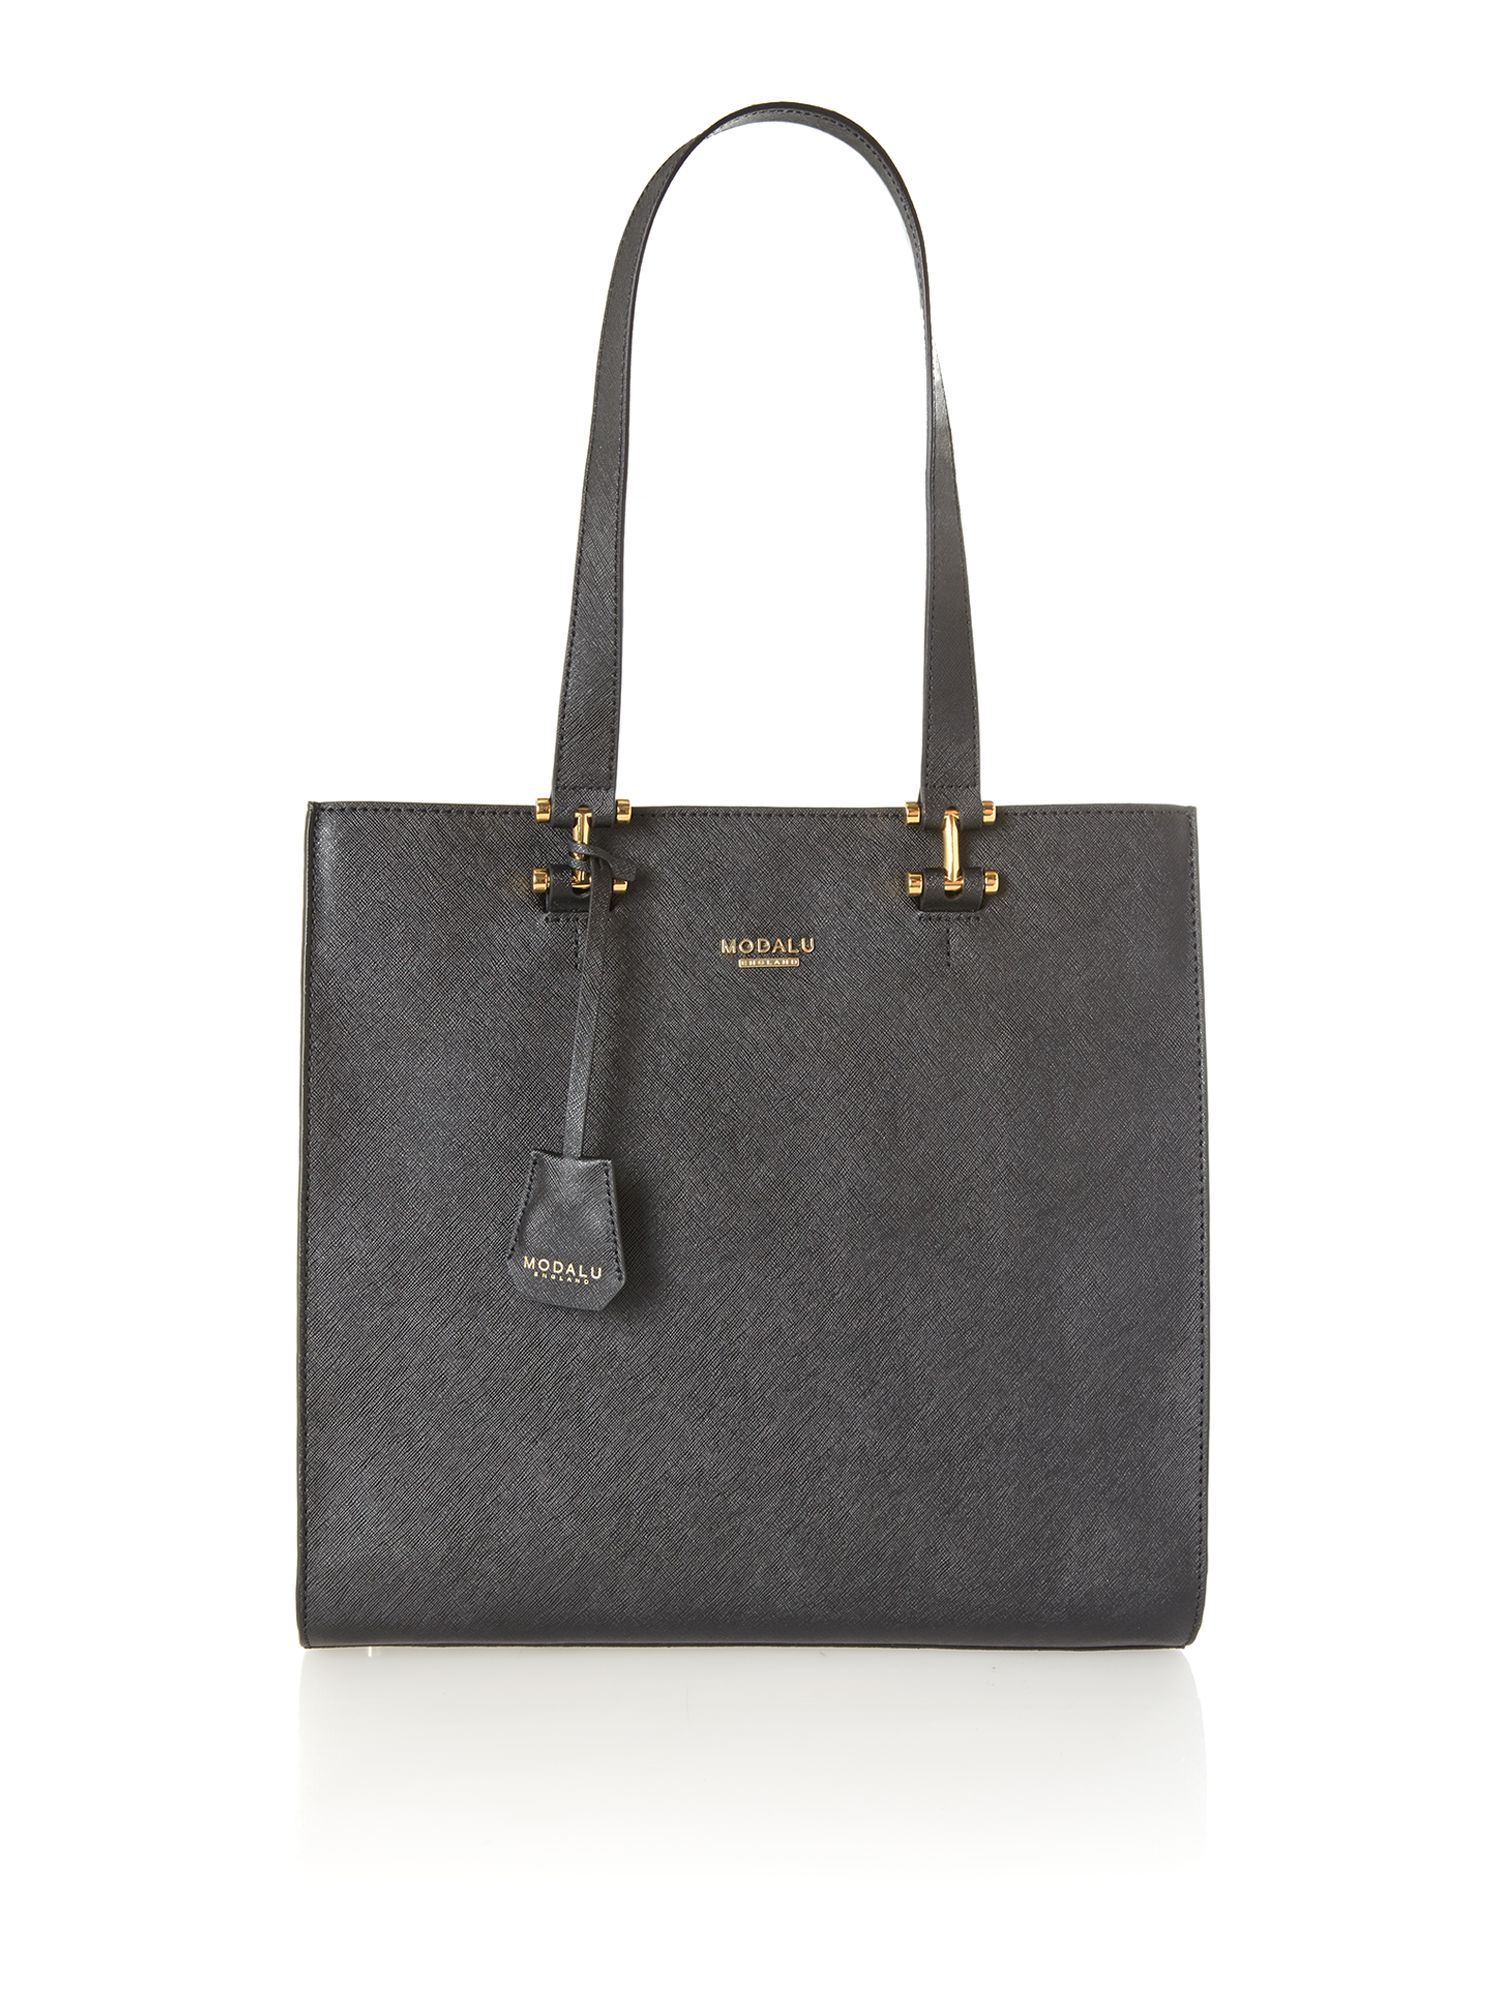 Cara black tote bag